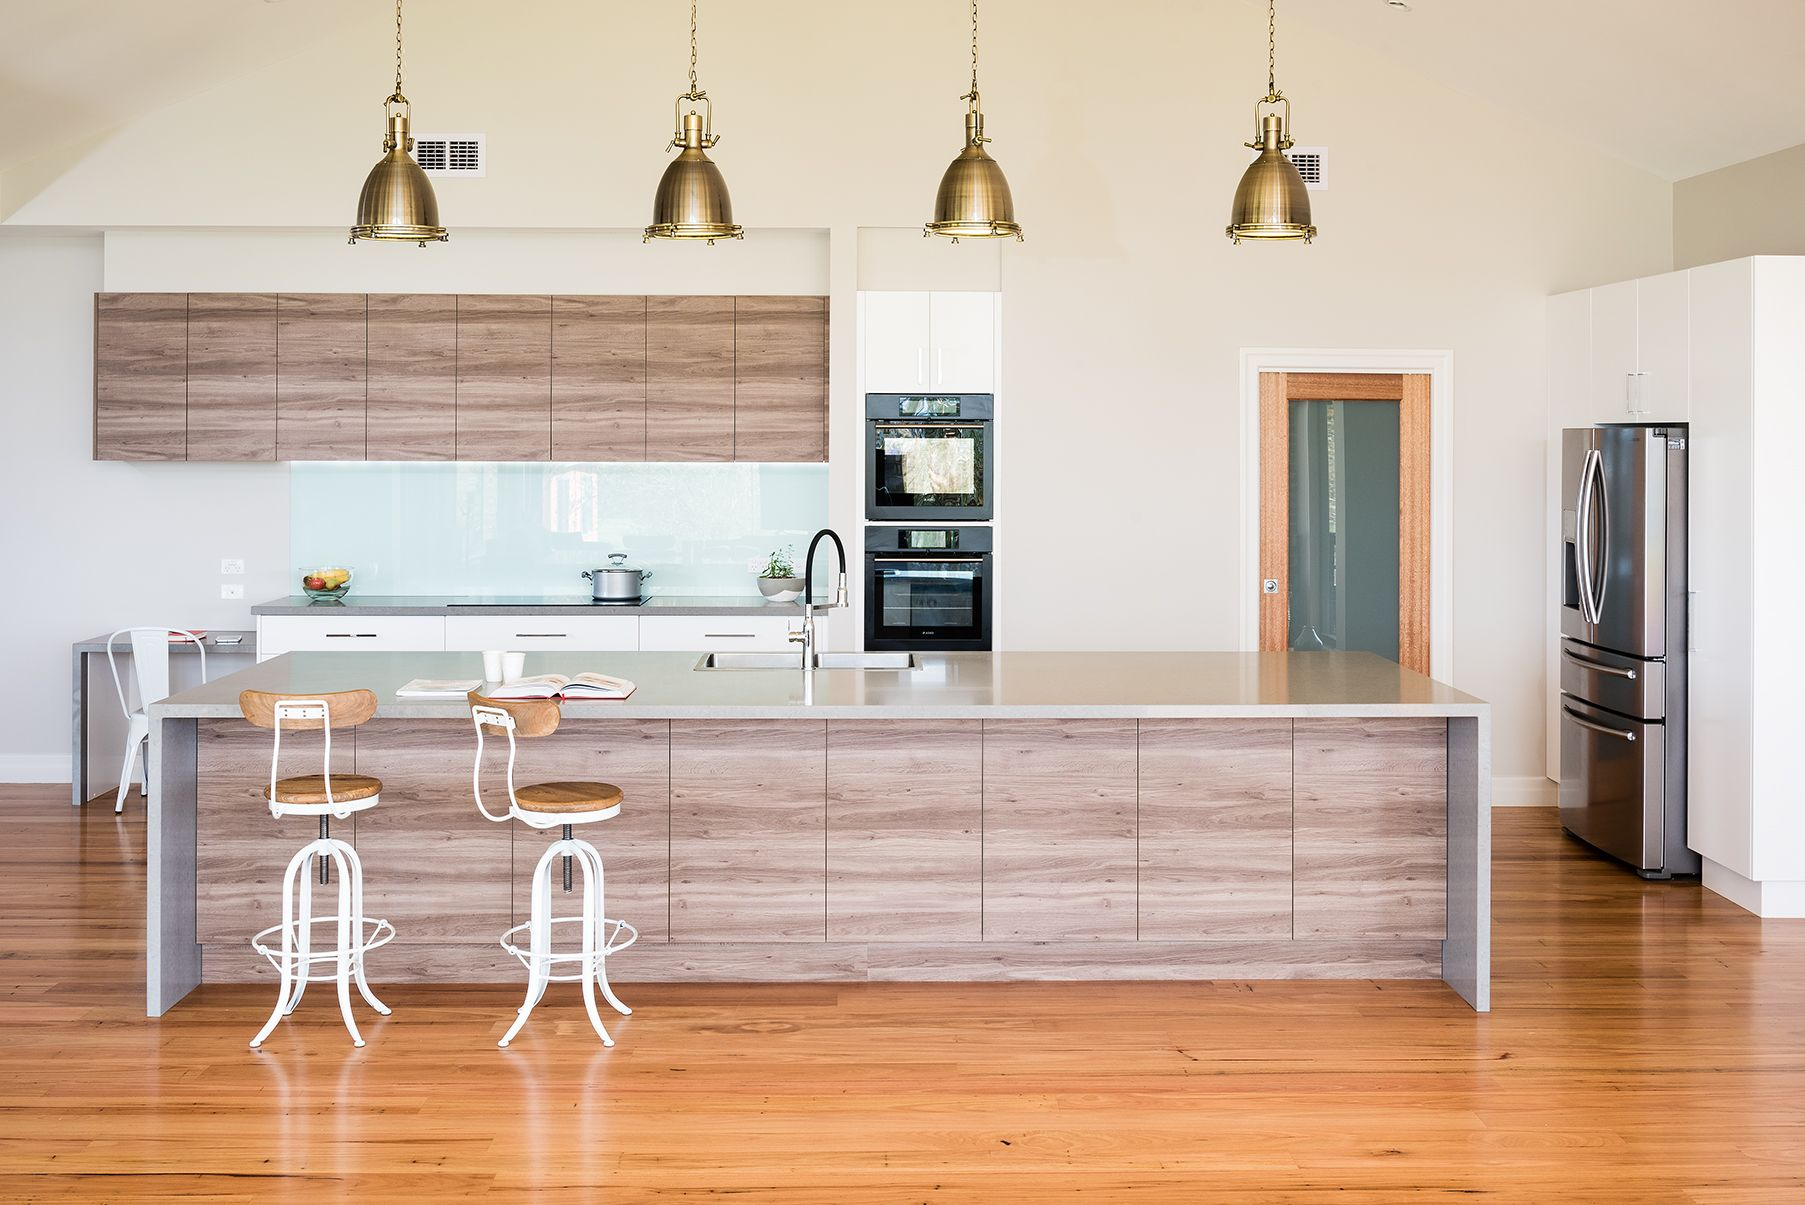 Current Trends In Kitchen Design Prepossessing Now Showing Current Kitchen Design Trends Are All About Textured Decorating Design